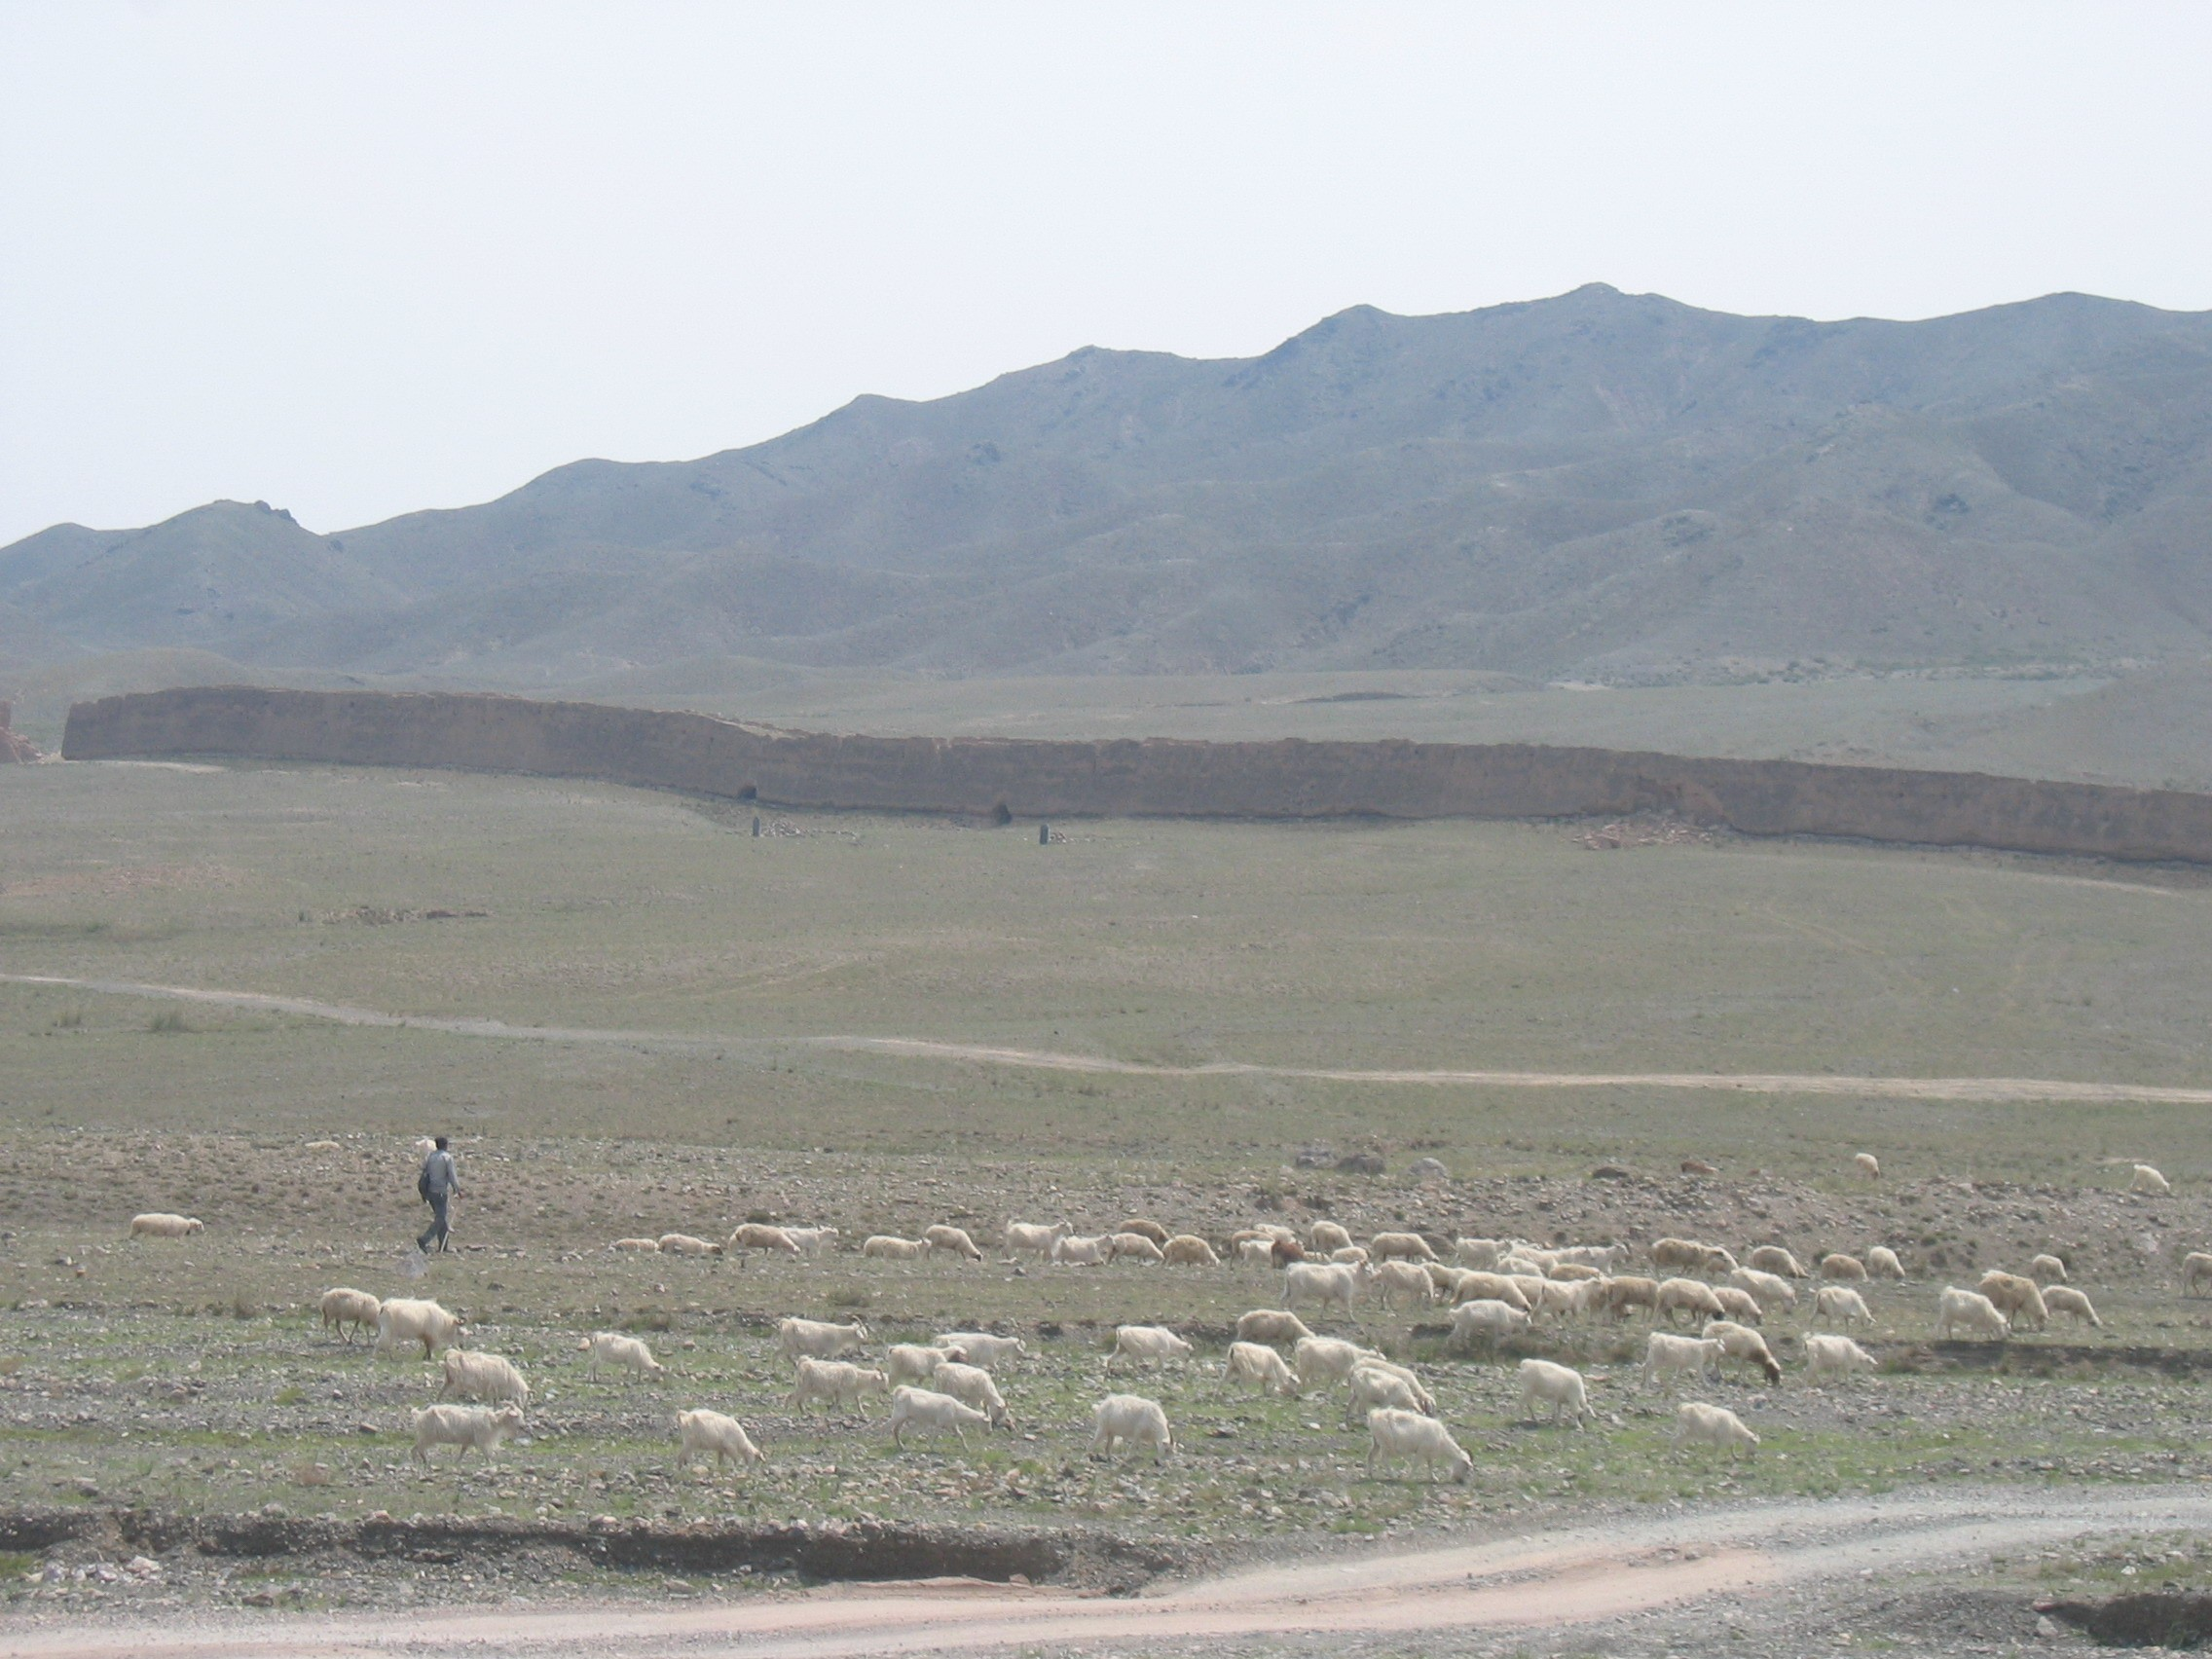 Grazing too many goats loosens the ground cover, leading to desertification of the fragile environment in northern China. Photo by Adrian Williams/ACIL